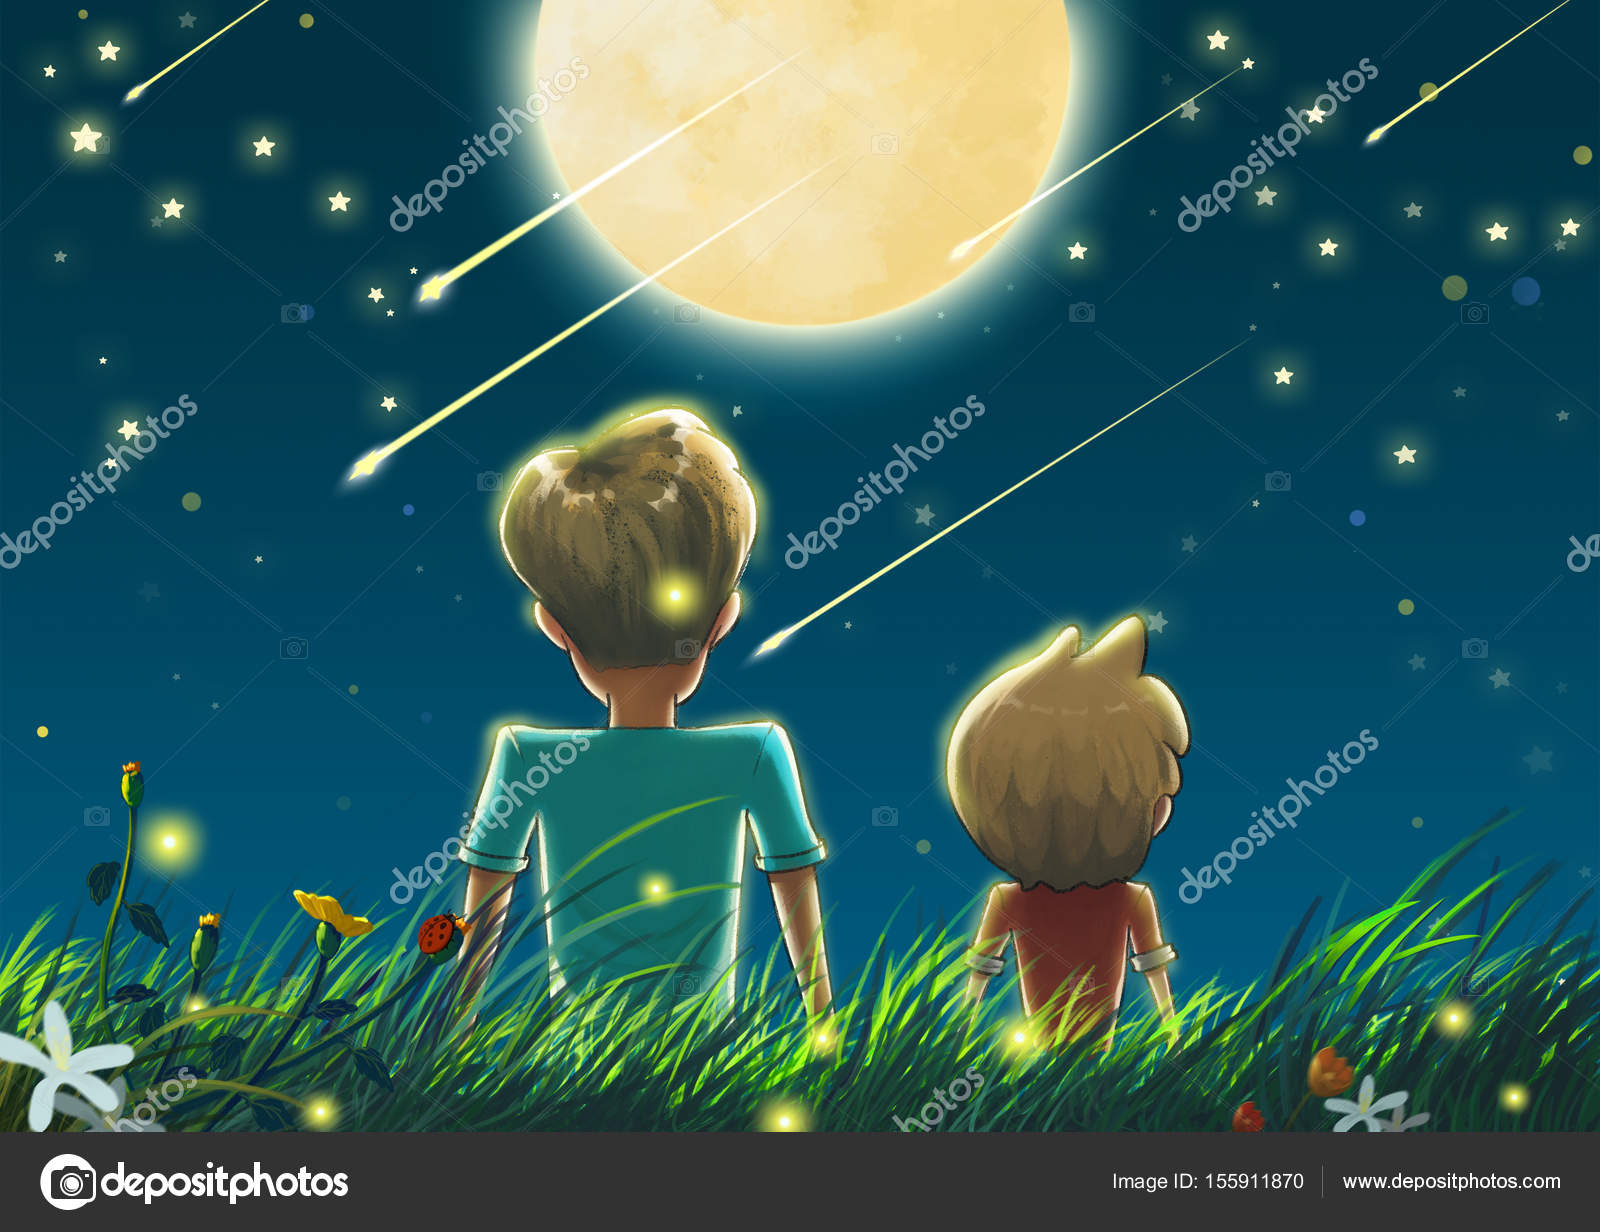 Father And Son In The Beautiful Night With Big Moon Shooting Stars Stock Photo